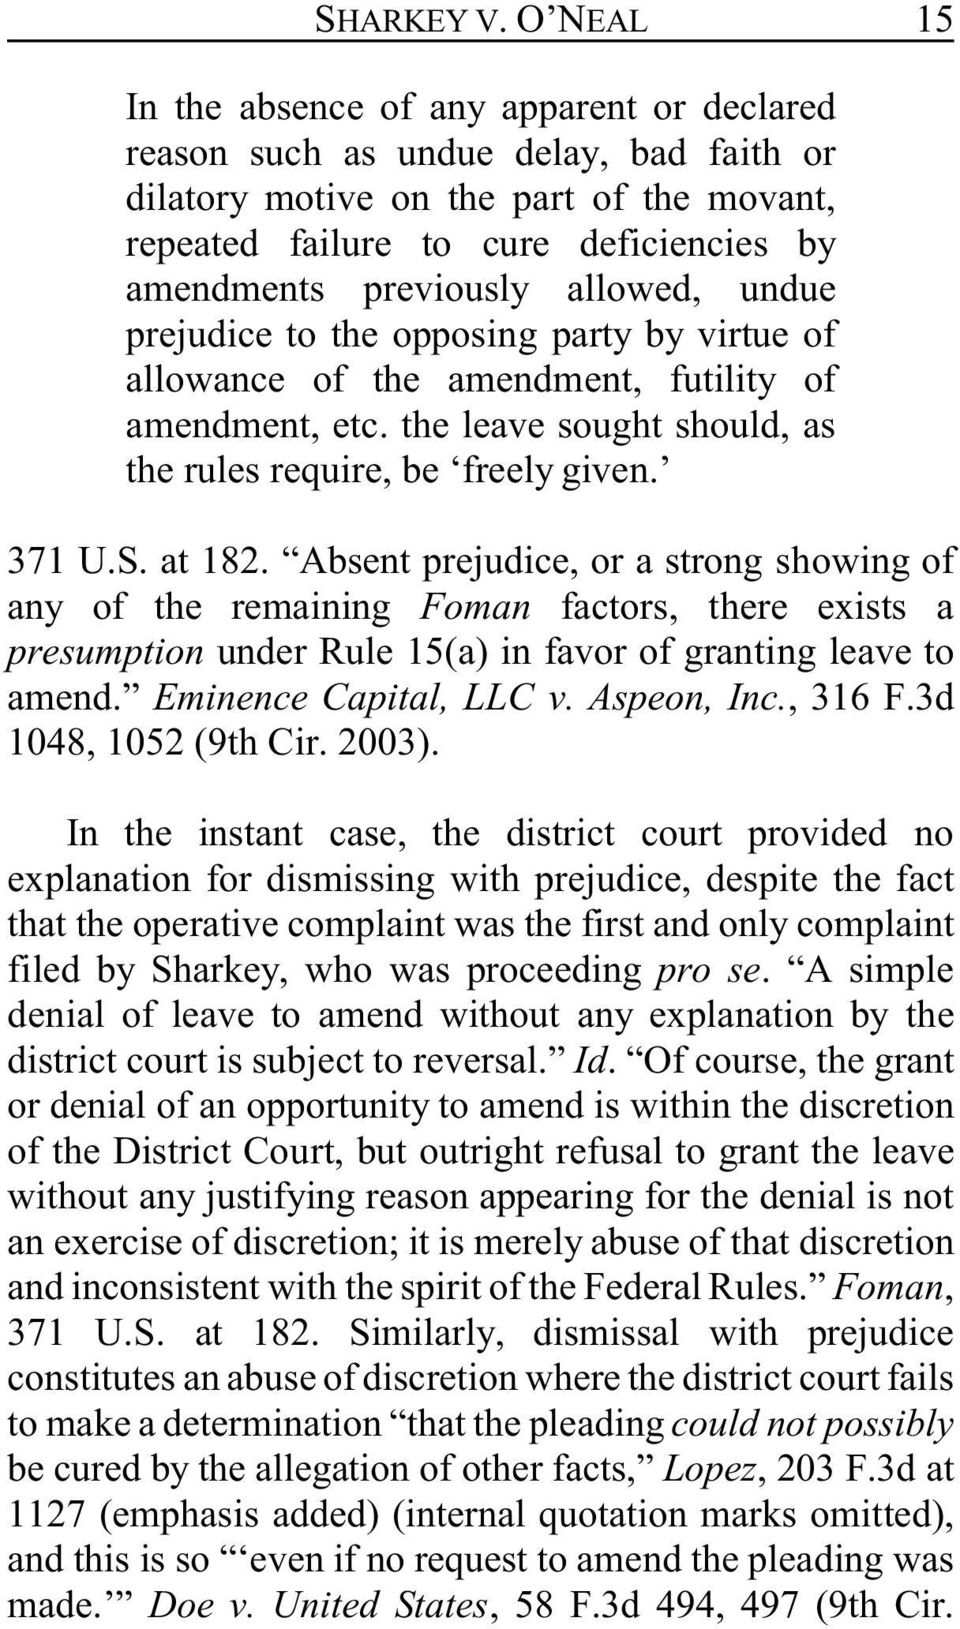 allowed, undue prejudice to the opposing party by virtue of allowance of the amendment, futility of amendment, etc. the leave sought should, as the rules require, be freely given. 371 U.S. at 182.